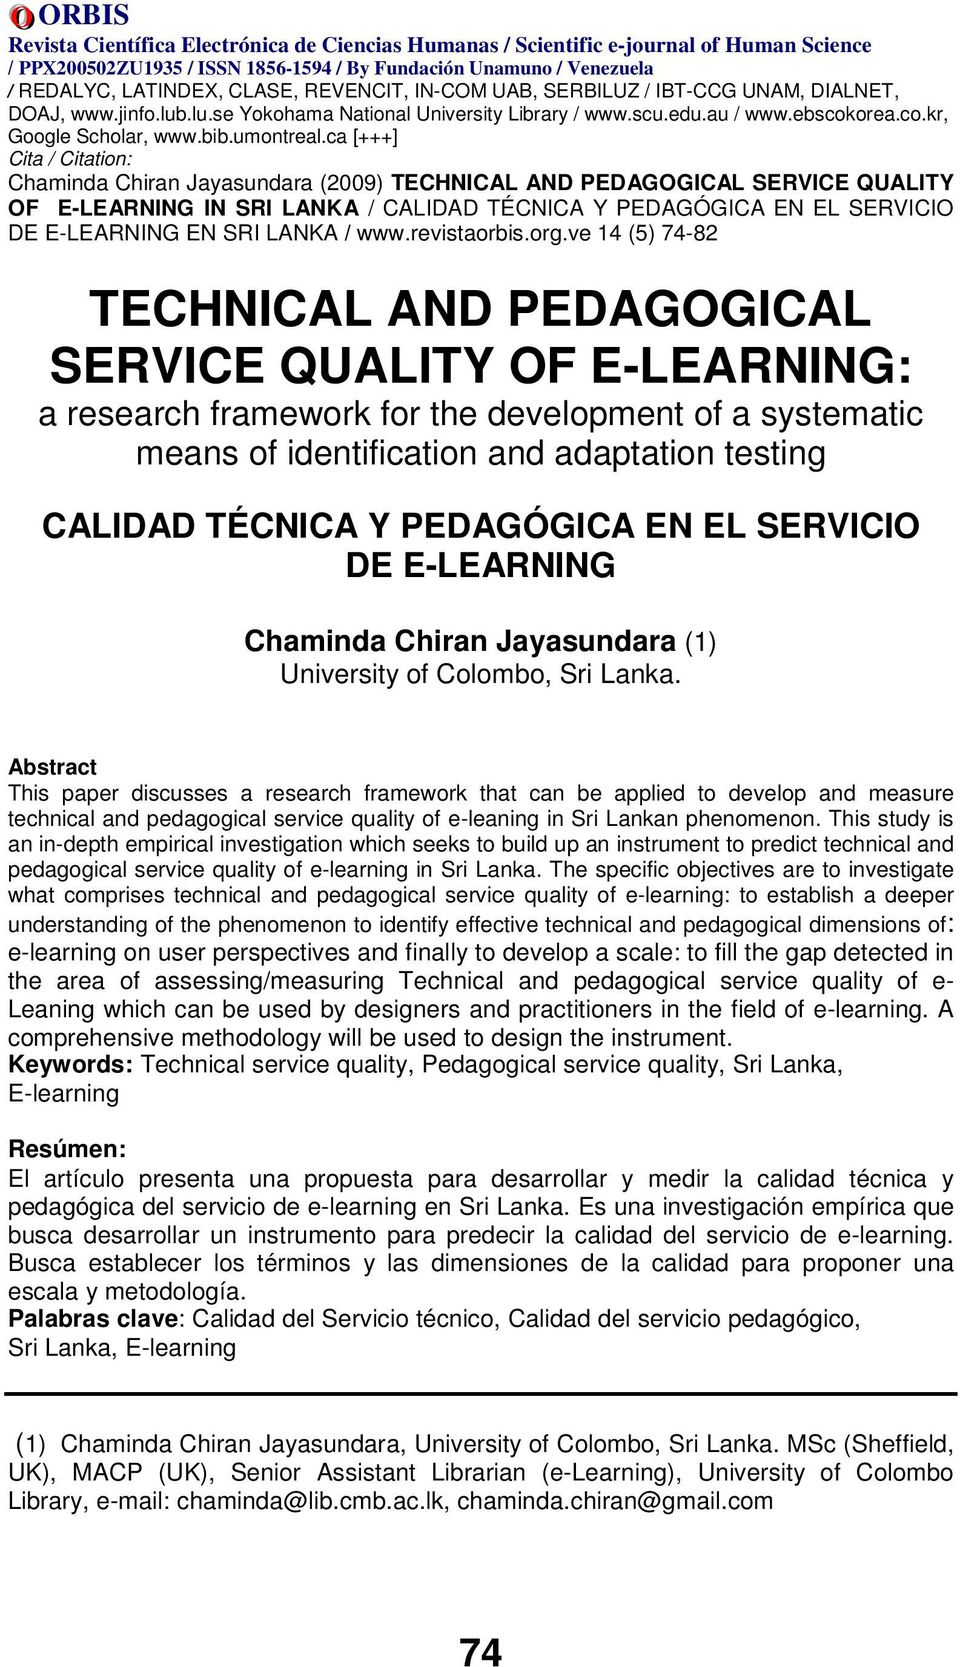 Abstract This paper discusses a research framework that can be applied to develop and measure technical and pedagogical service quality of e-leaning in Sri Lankan phenomenon.